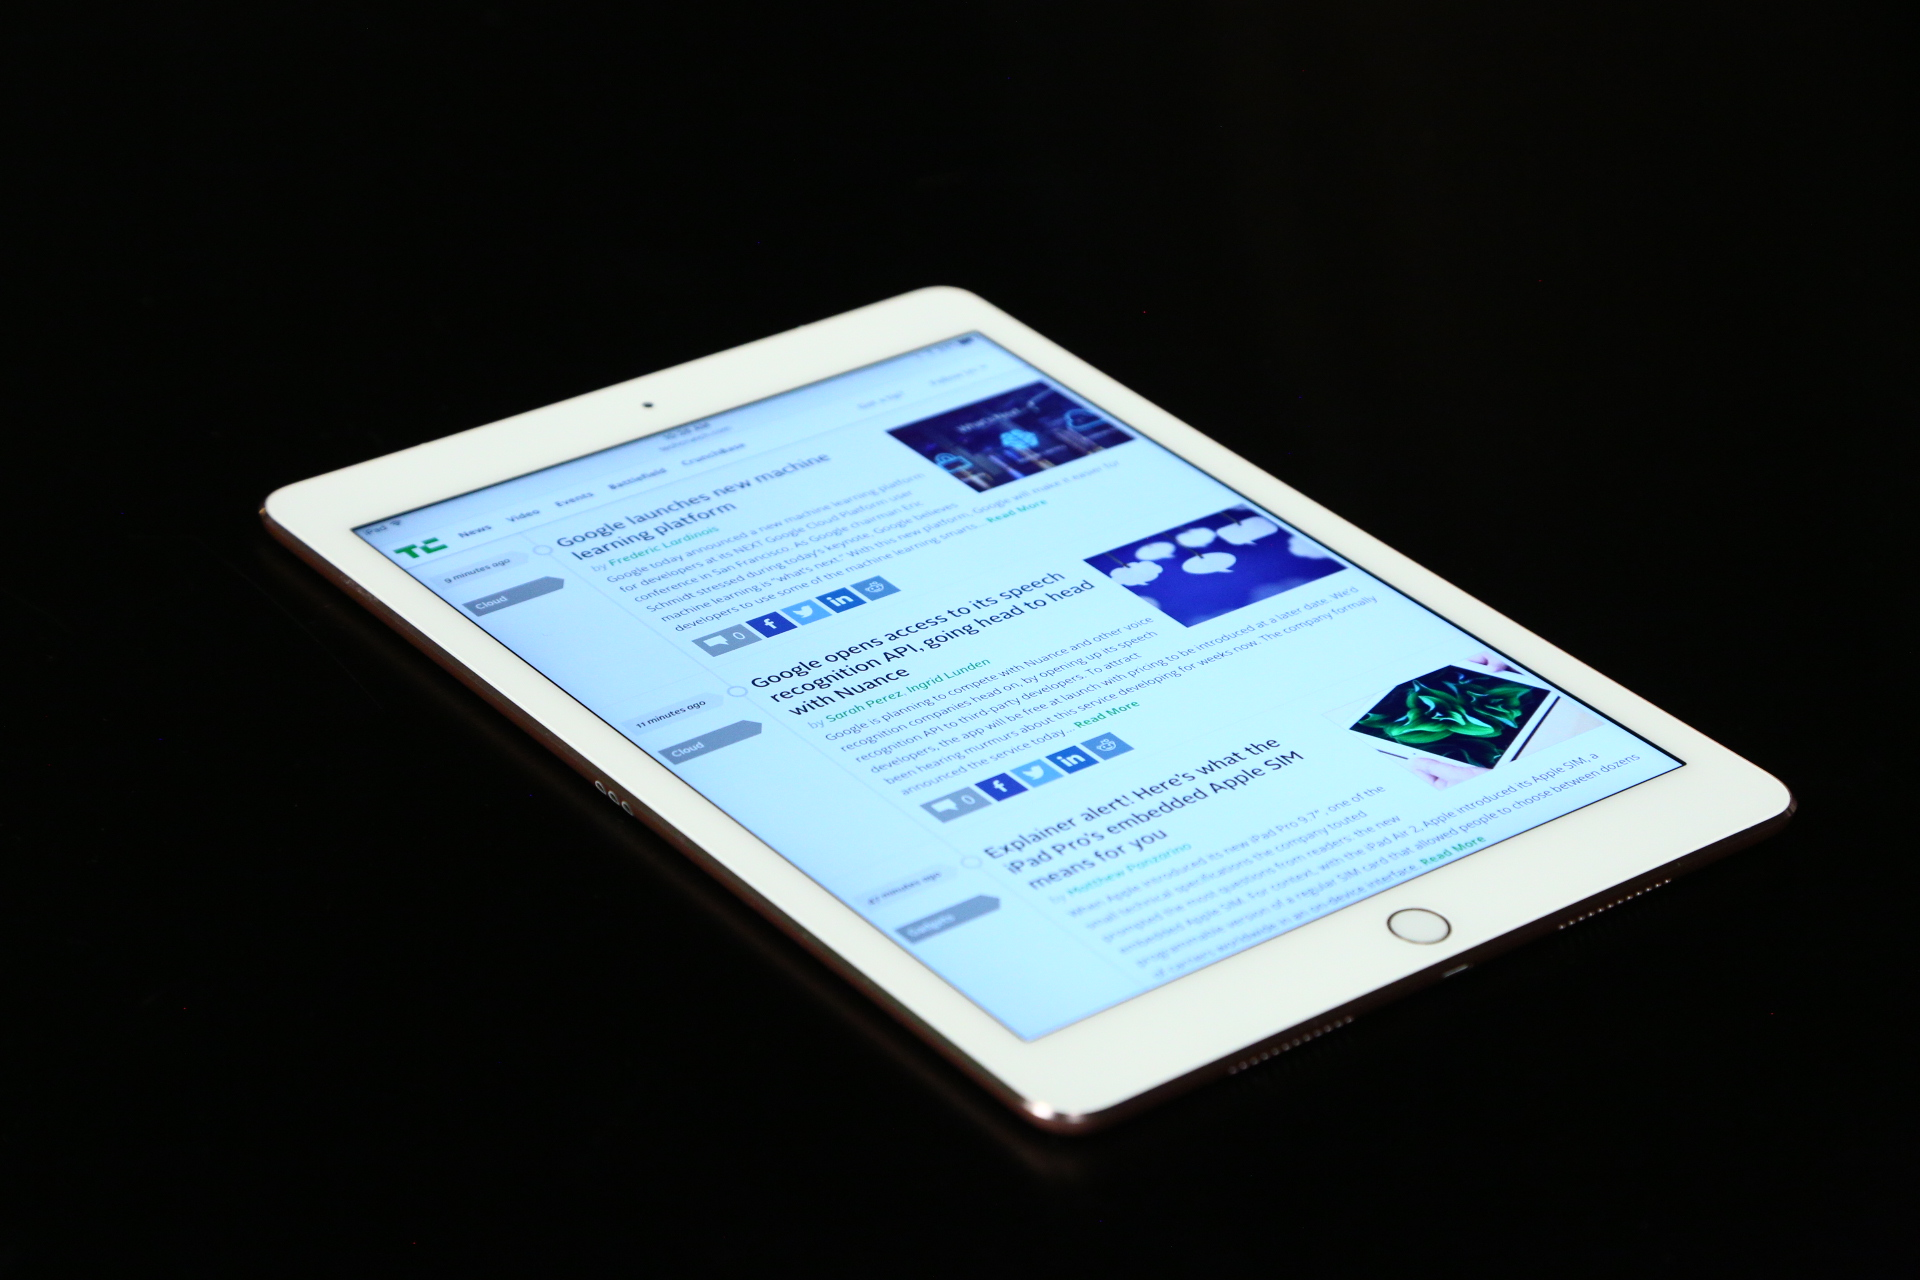 Truphone now offers iPad data plans in the UK through the